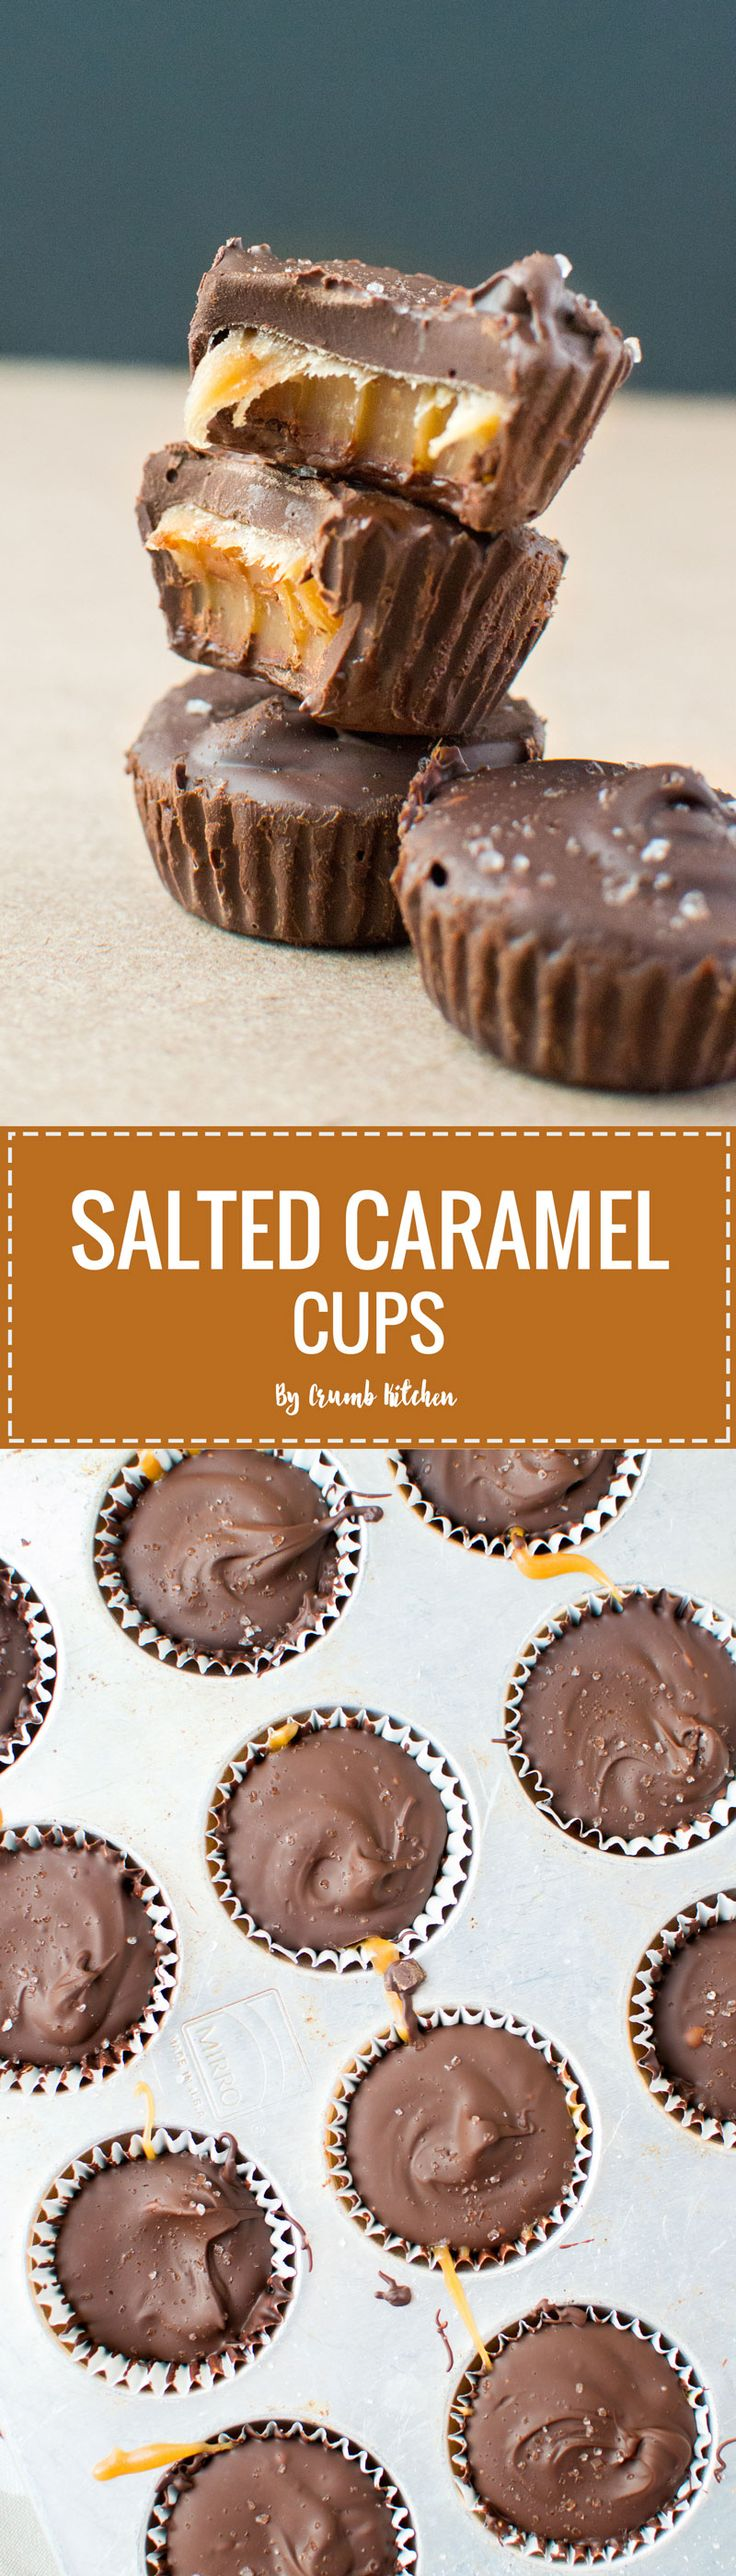 basketball uk Rich  chewy homemade salted caramel fills these creamy chocolate coated Salted Caramel Cups    crumbkitchen com